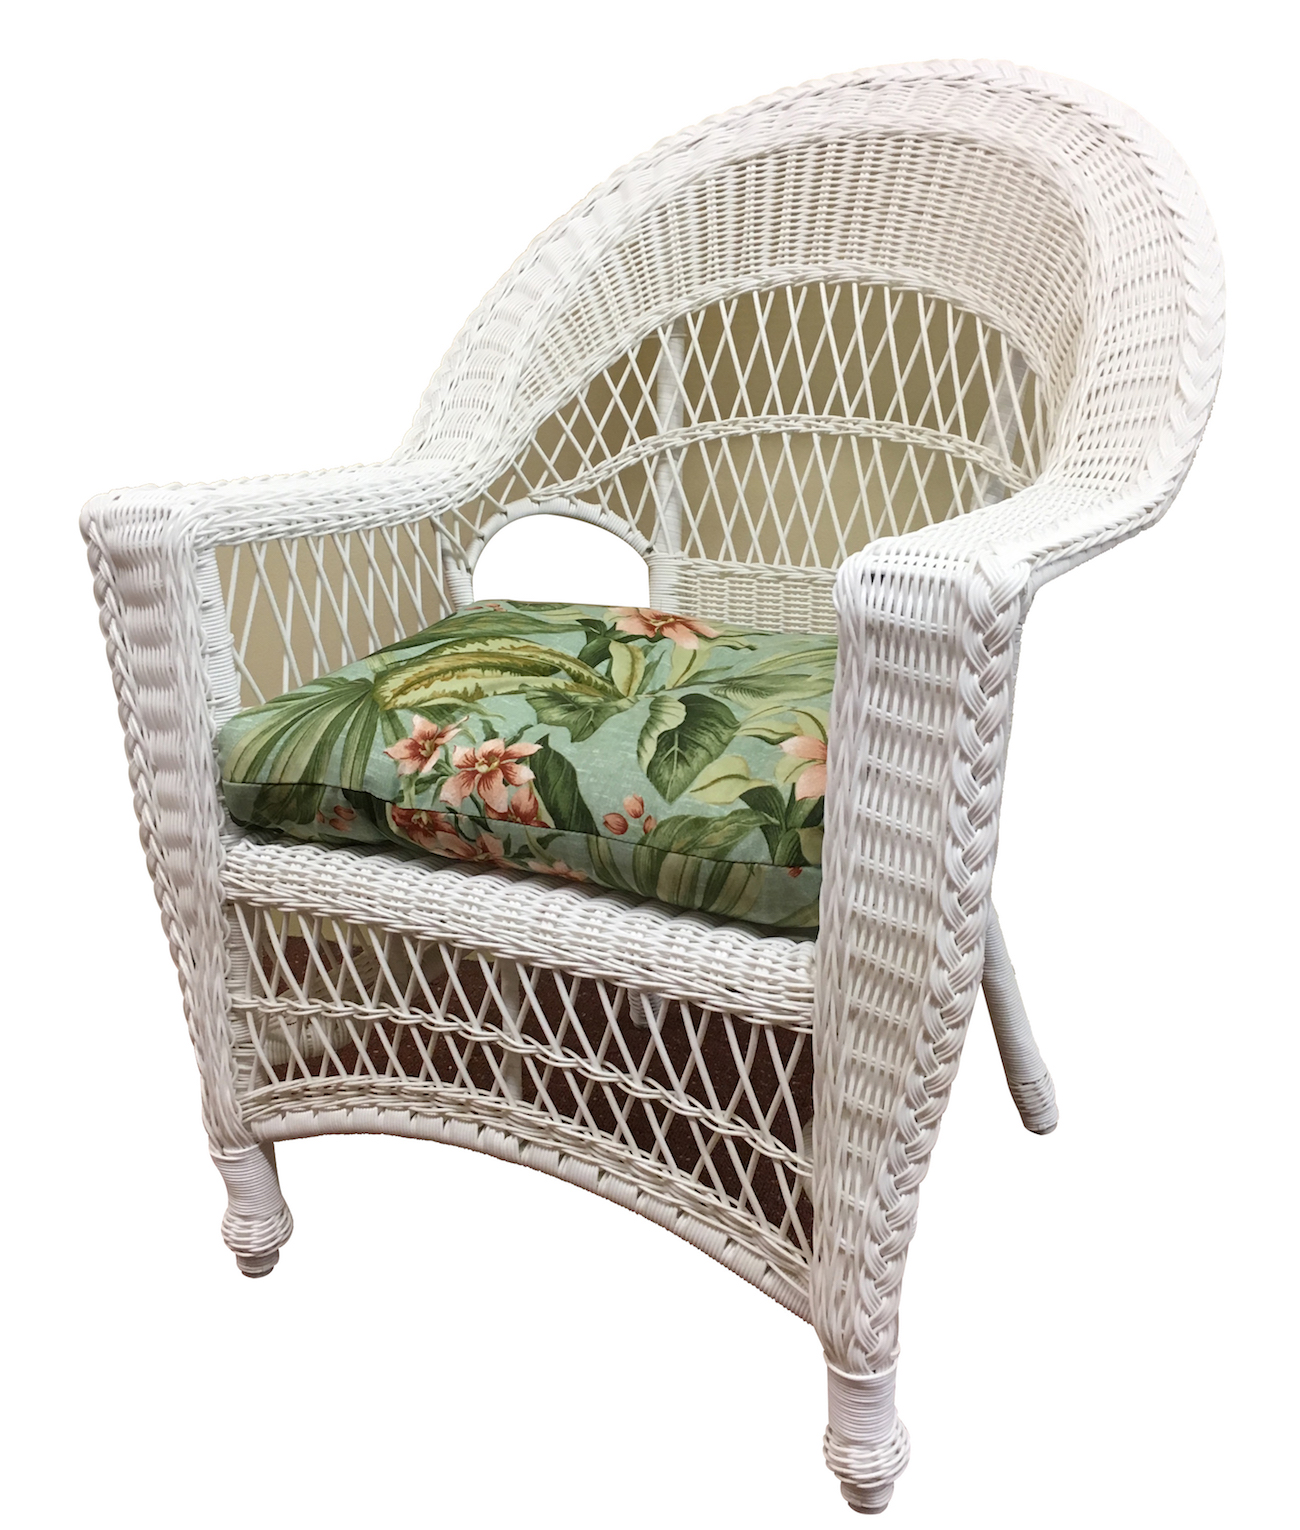 wicker outdoor chairs gaming chair amazon cape cod